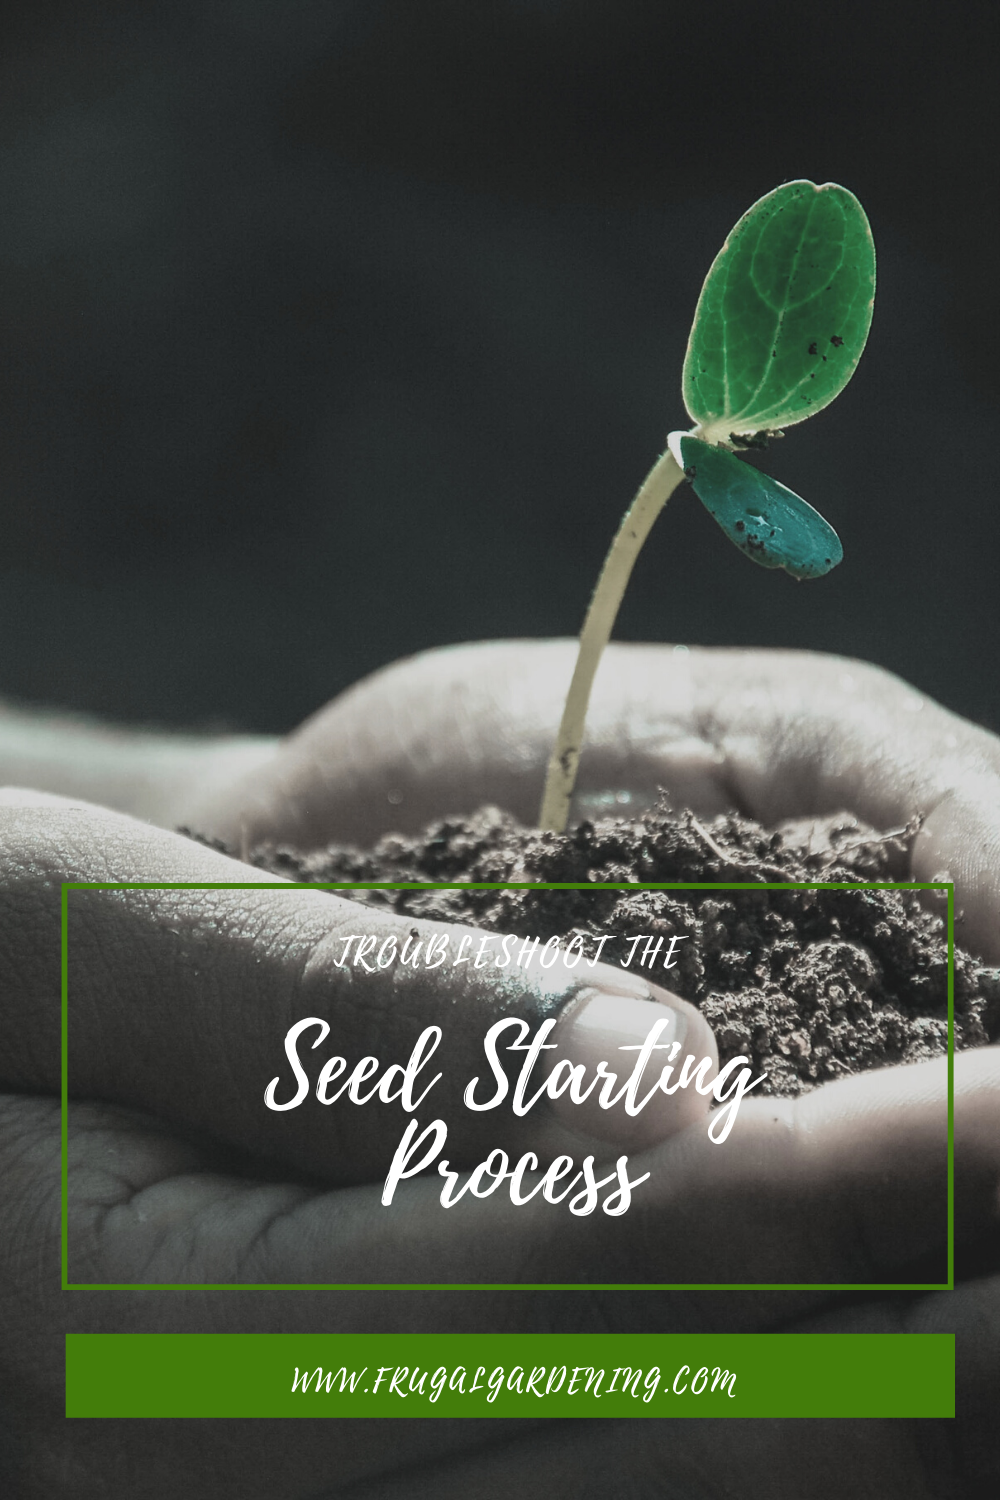 Troubleshoot the Seed Starting Process